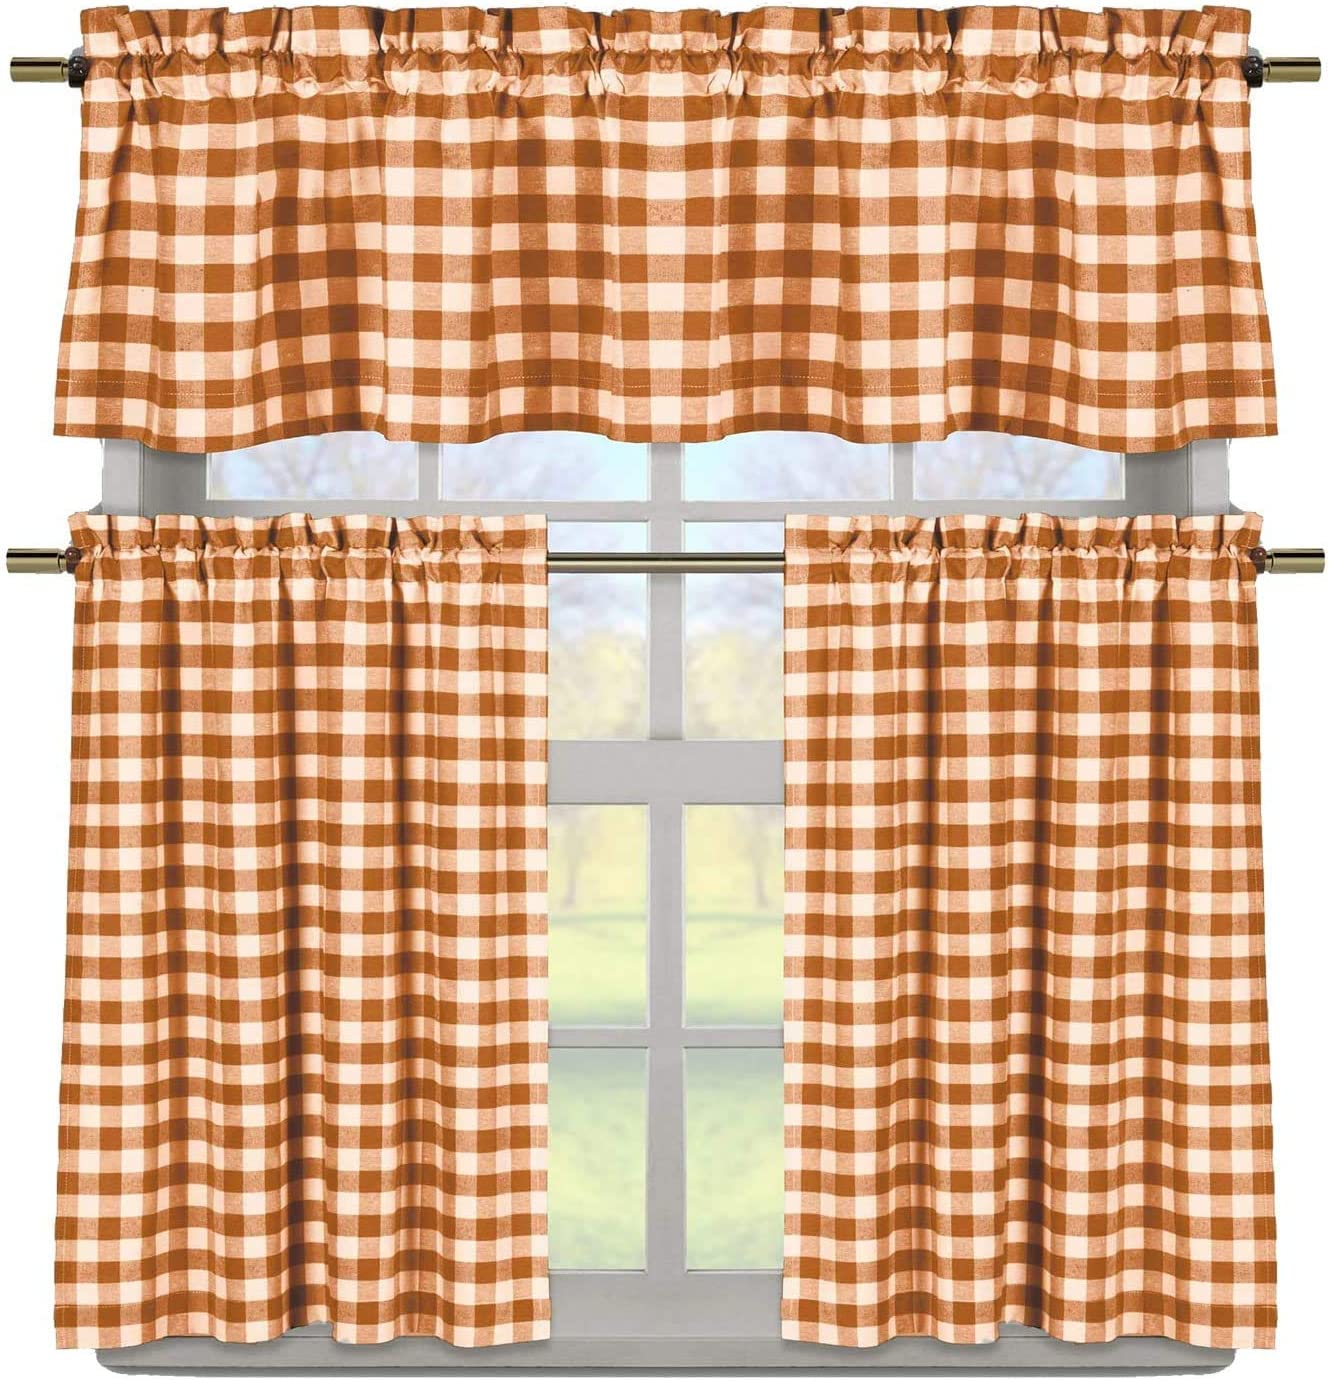 3 Piece Plaid, Checkered, Gingham 35 Cotton Kitchen Curtain Set with 1 Valance and 2 Tier Panels Orange